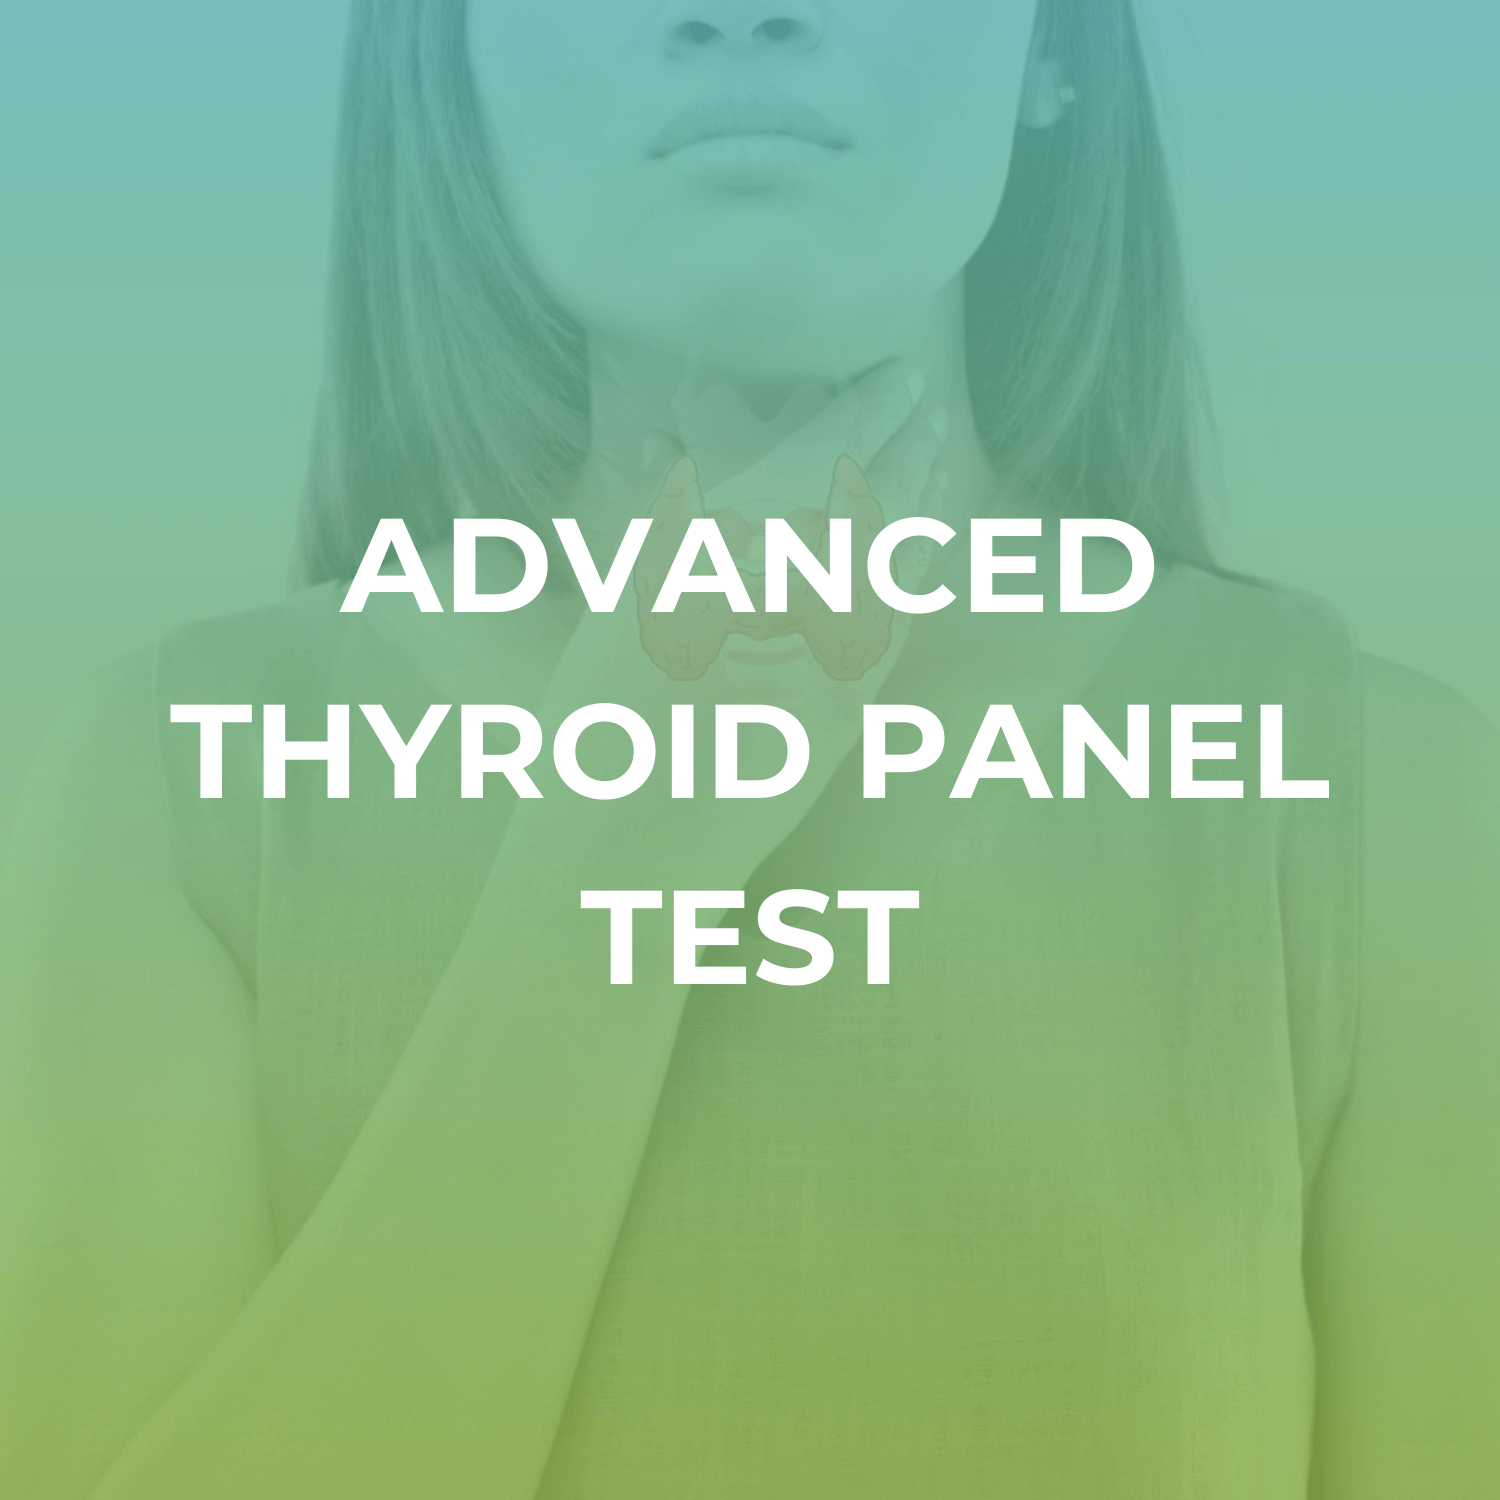 Advanced Thyroid Panel Test